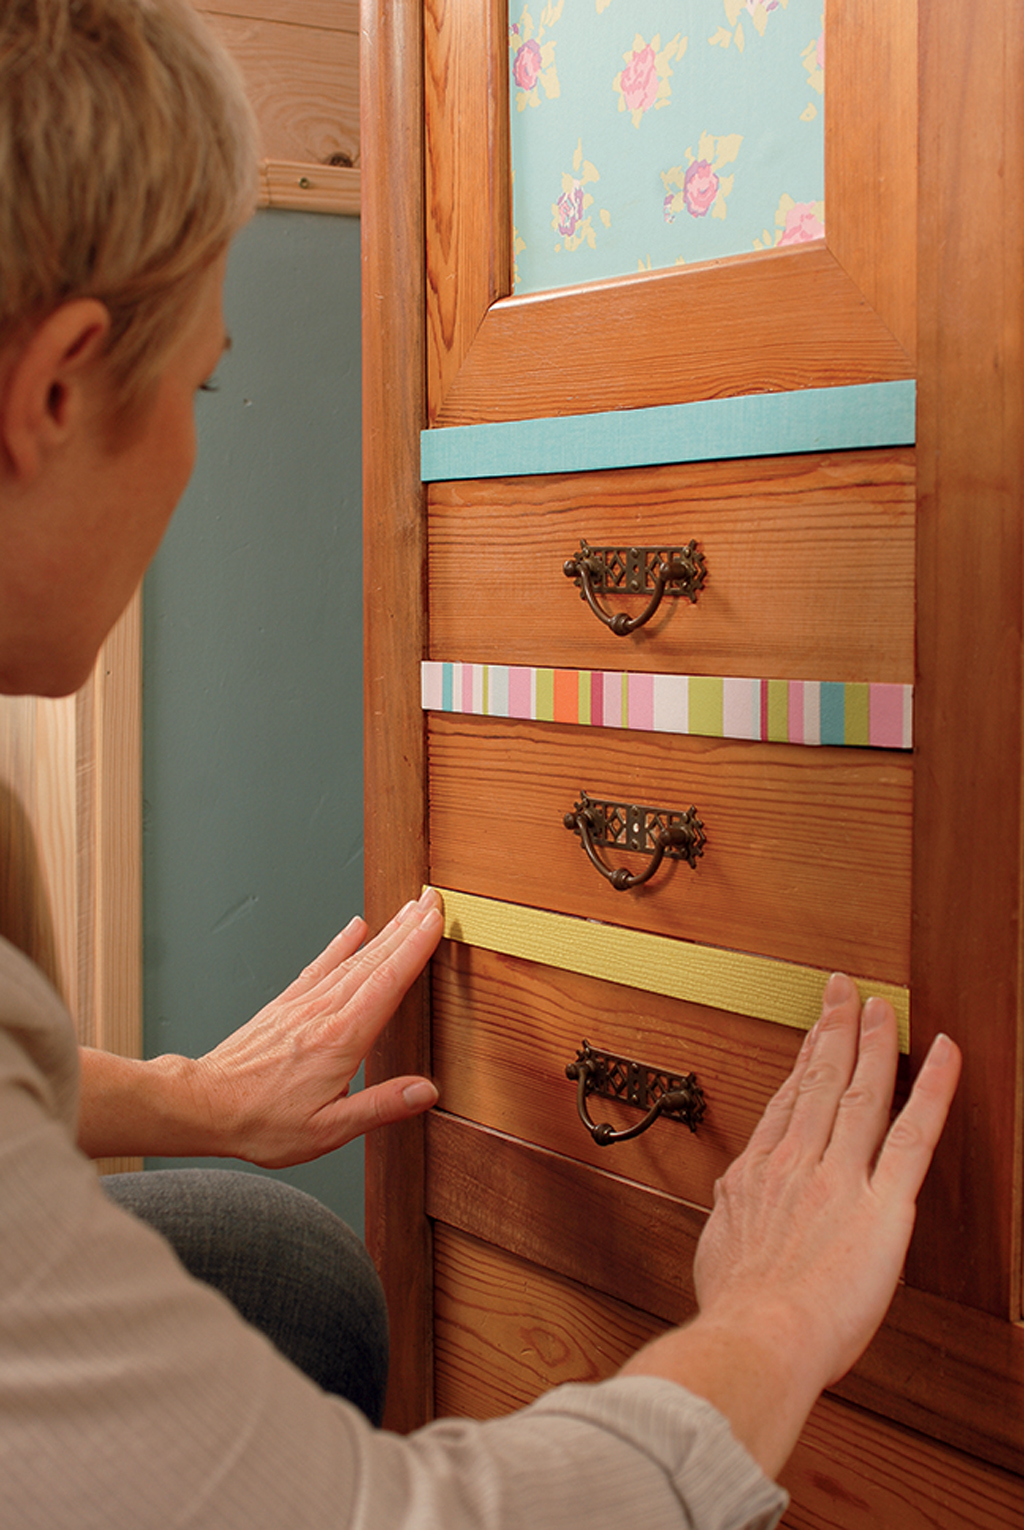 relooker une vieille armoire avec du papier peint diy family. Black Bedroom Furniture Sets. Home Design Ideas